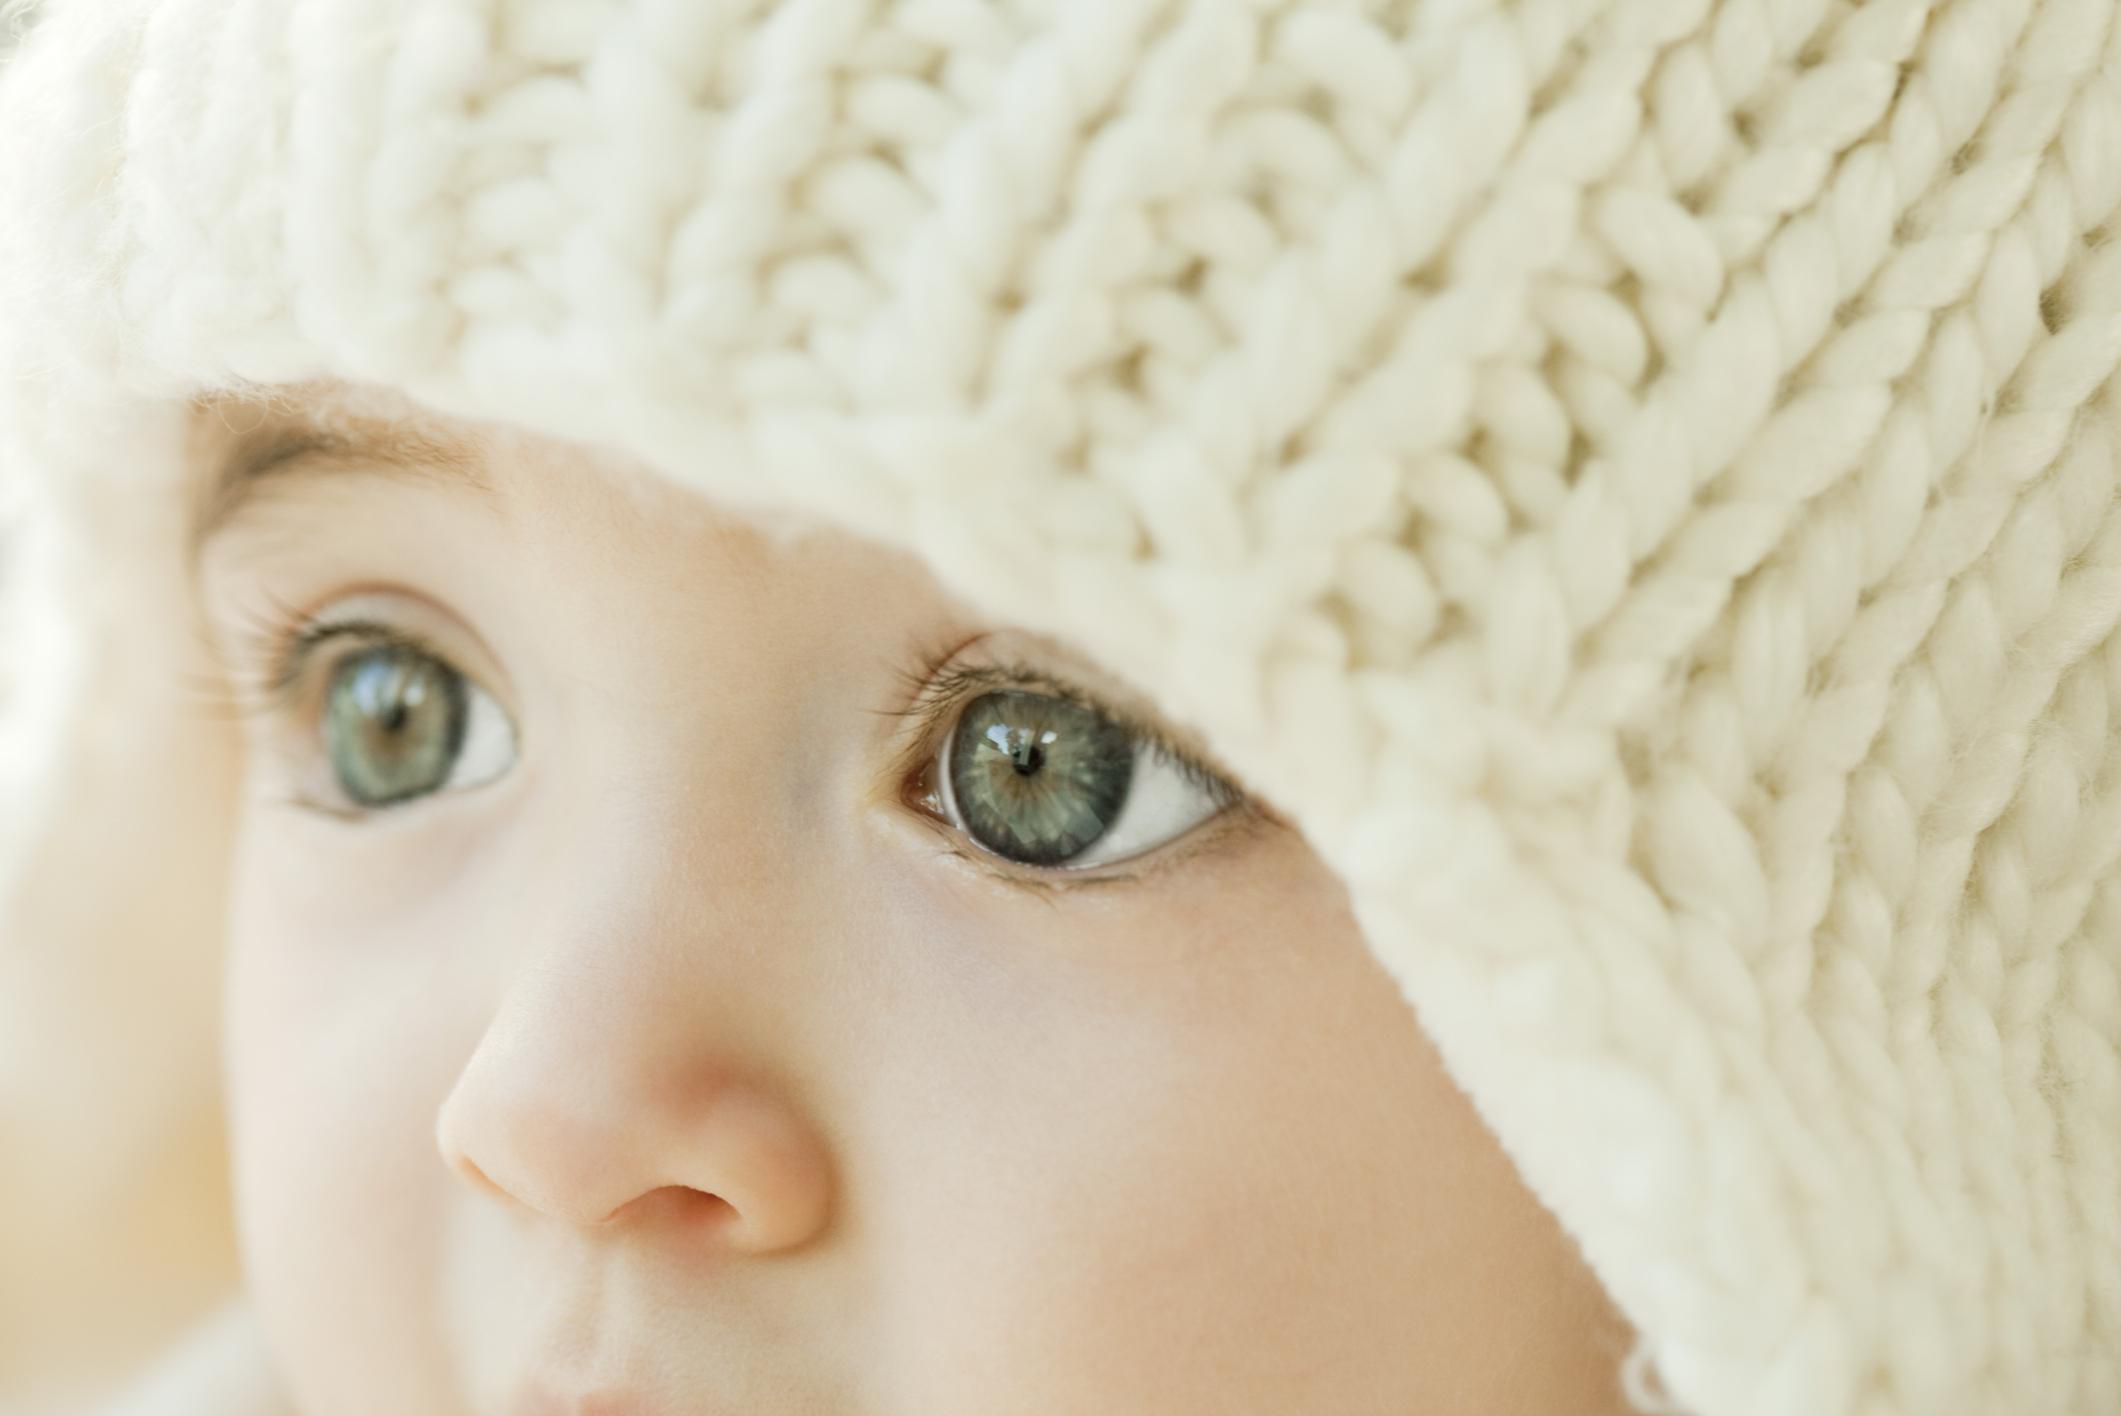 A baby with large, blue eyes